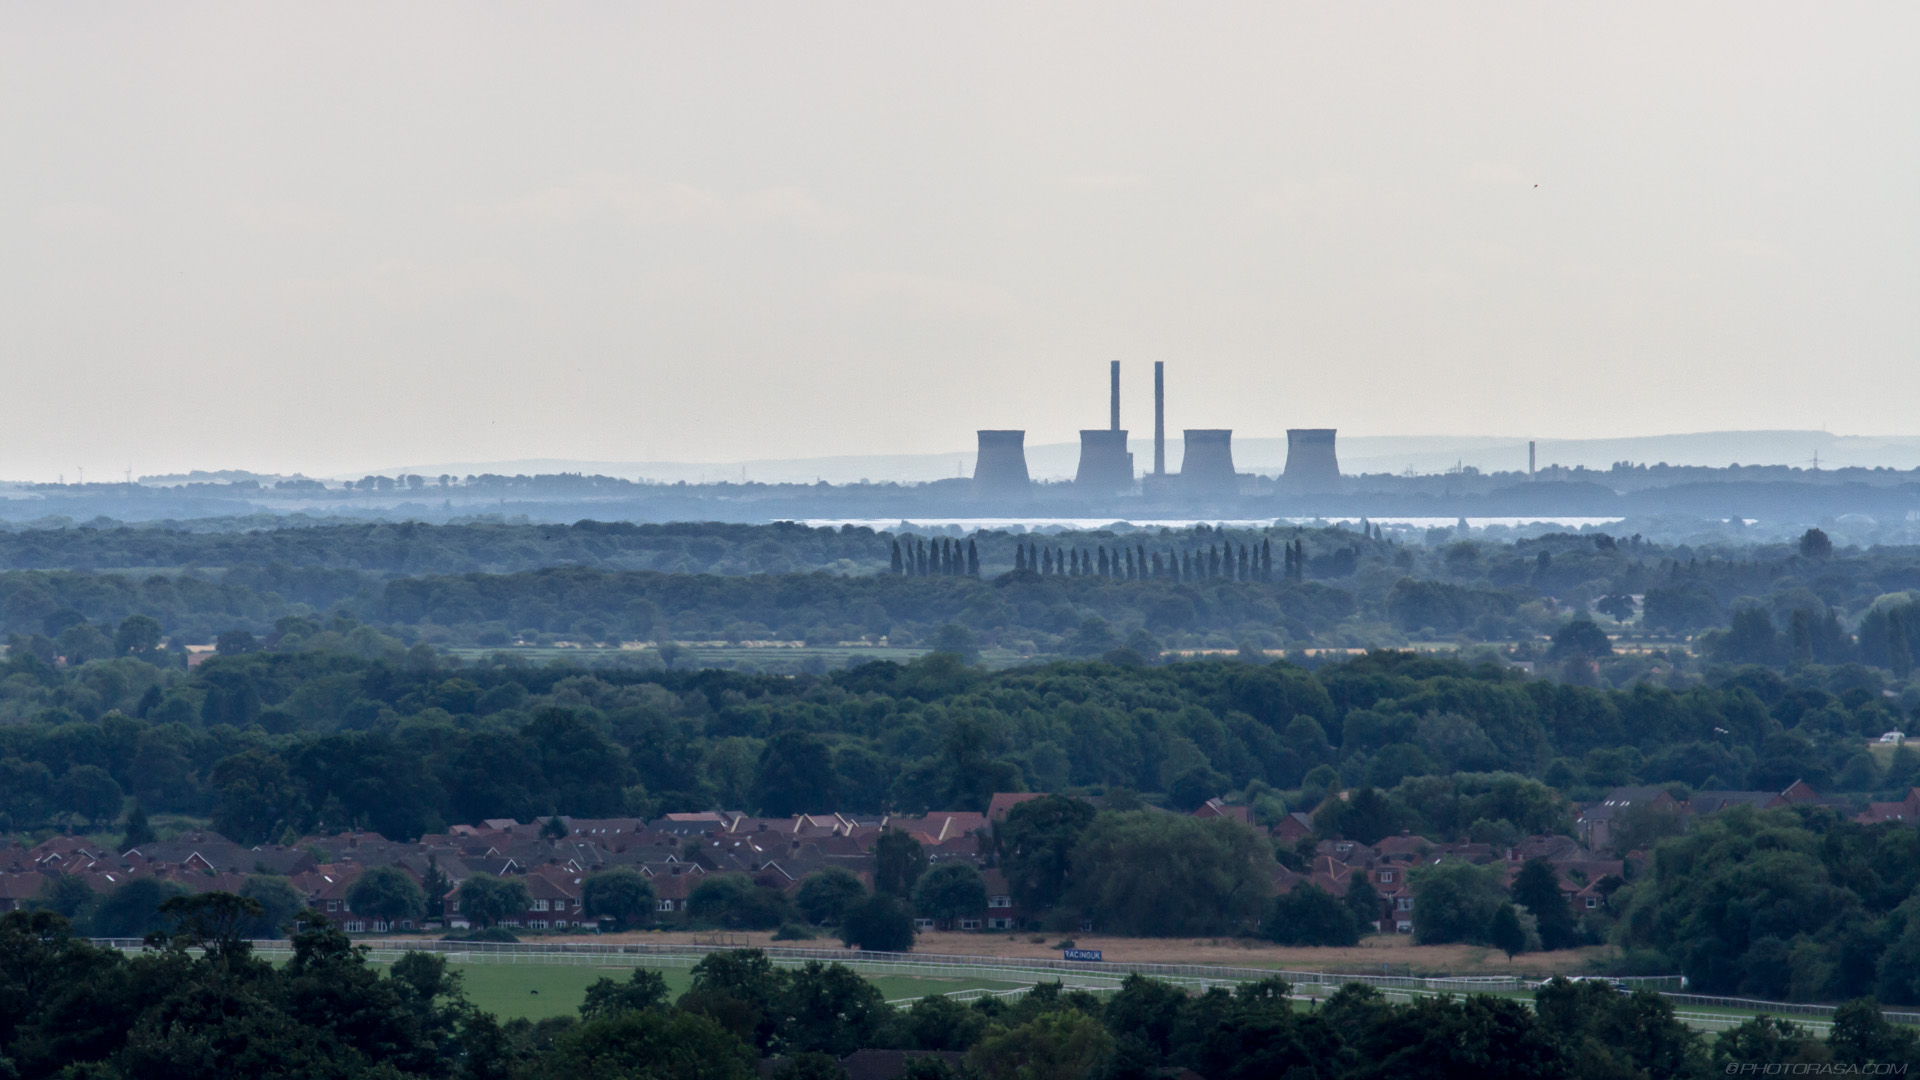 http://photorasa.com/places/yorkminster-cathedral/attachment/ferrybridge-power-station-from-yorkminster-tower/